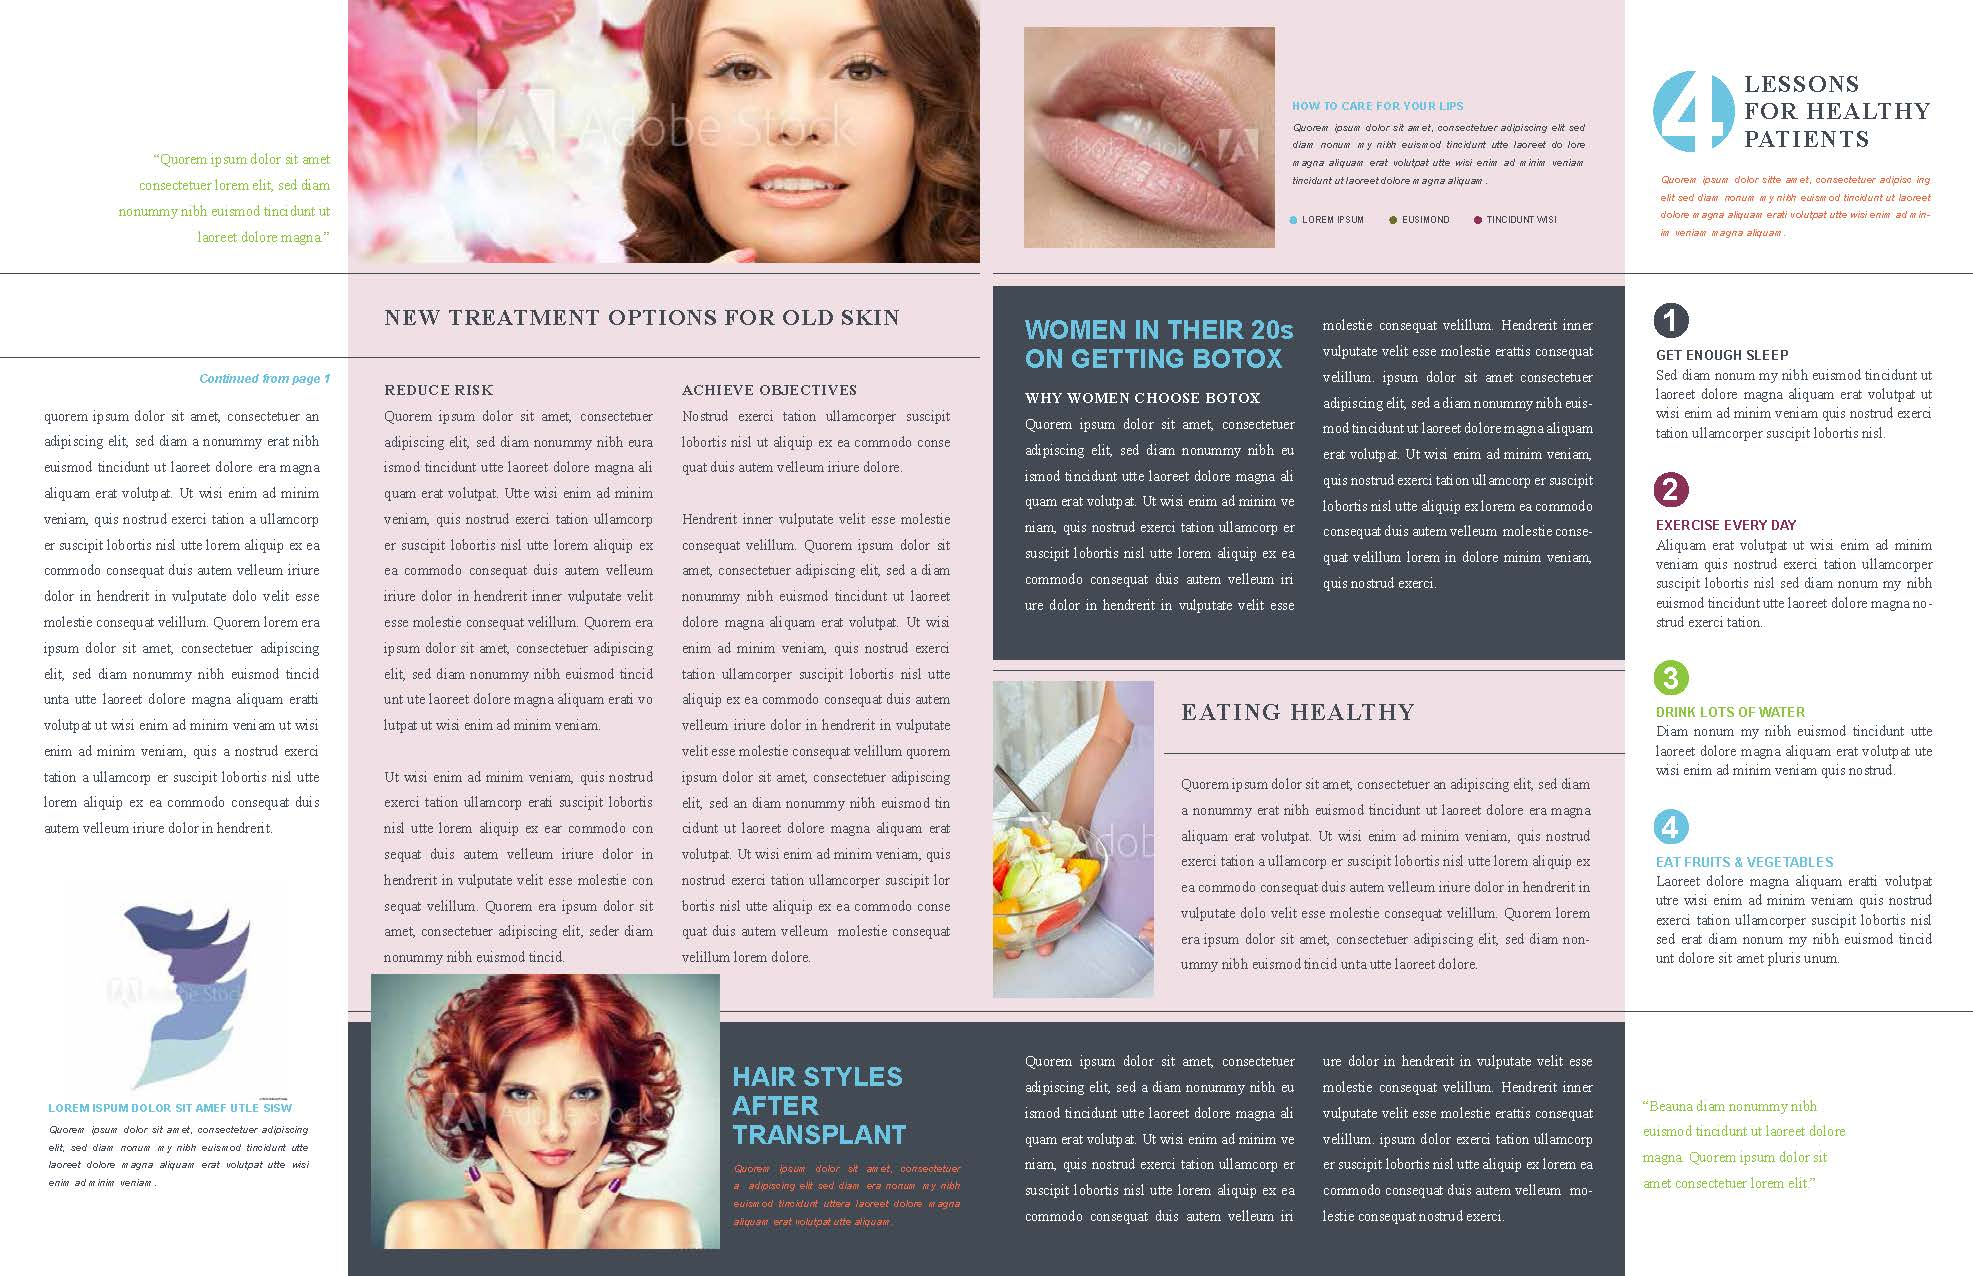 Plastic surgery newsletter pages 2 and 3